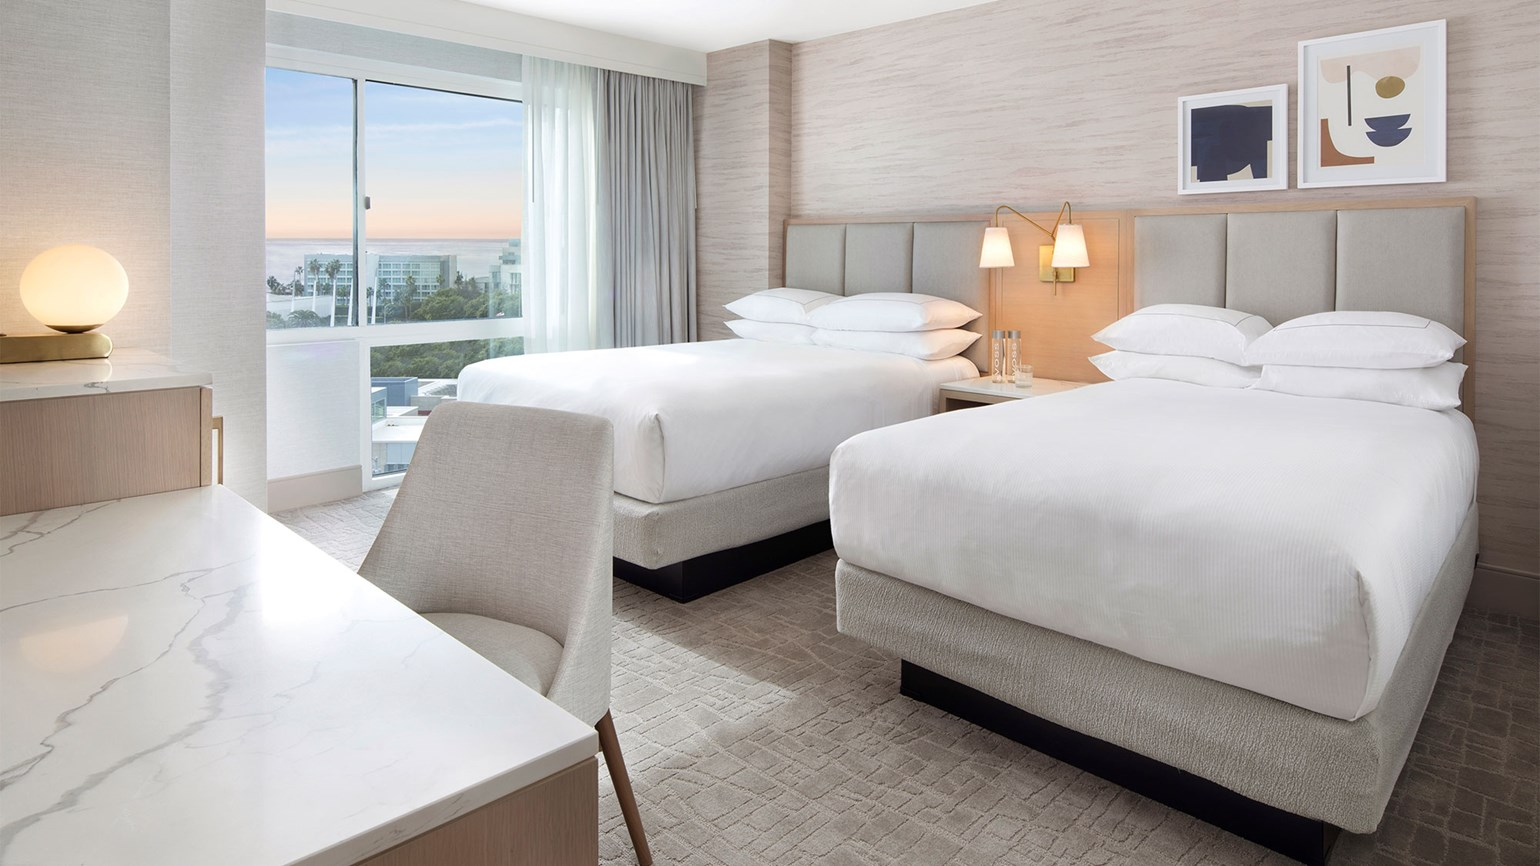 Latest Hilton outpost in California has a suite focus